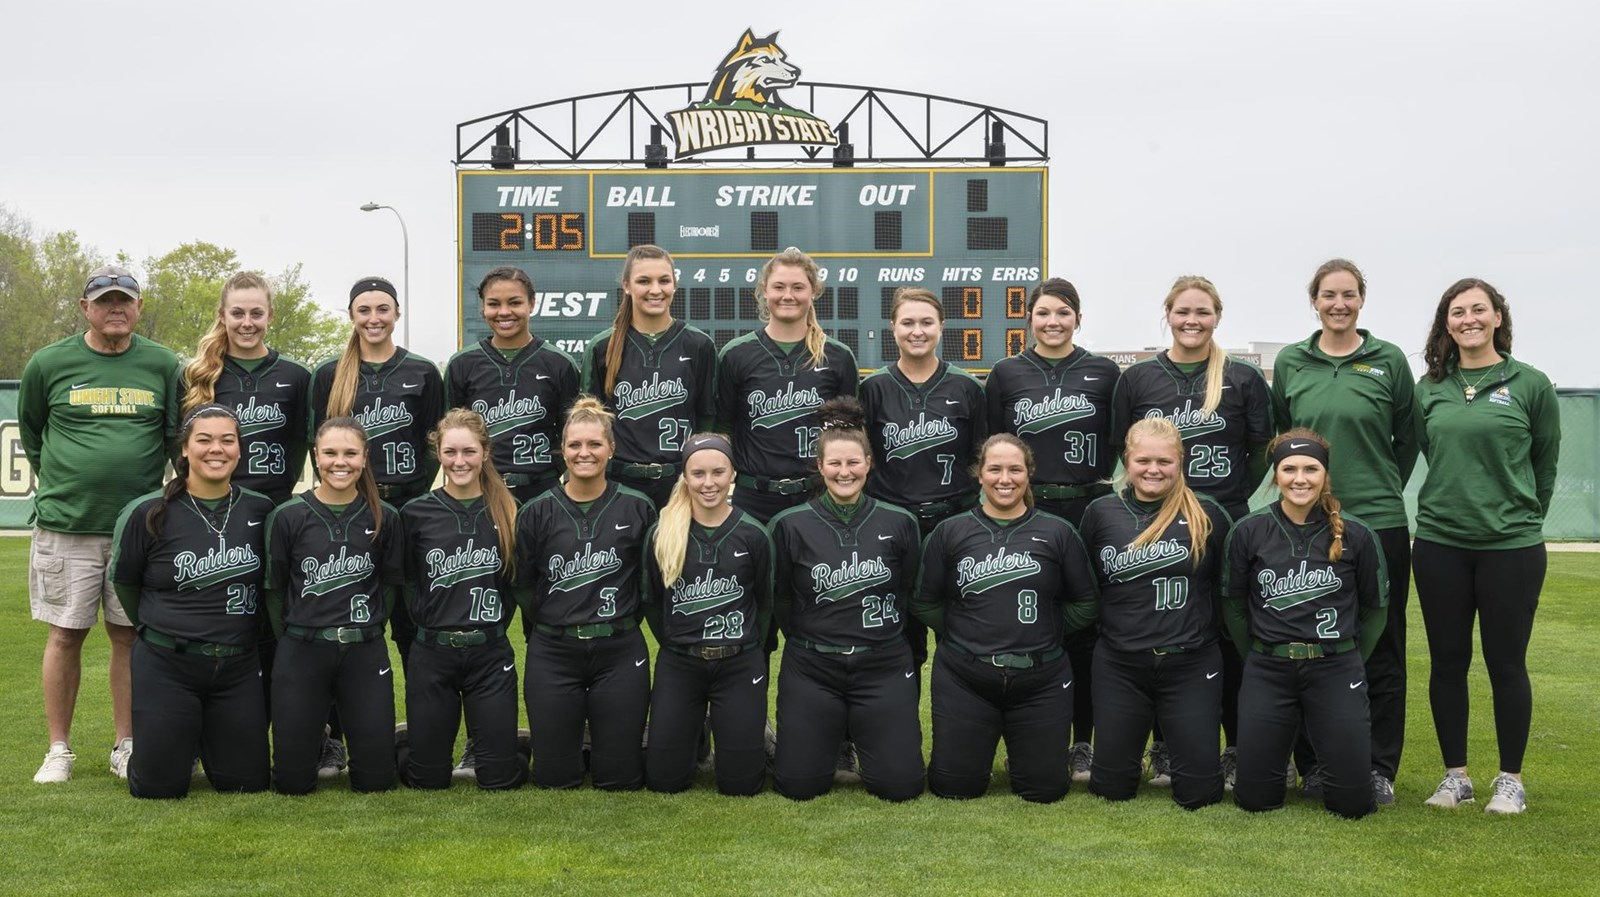 Wright State Graduation 2020.2019 Softball Roster Wright State University Athletics